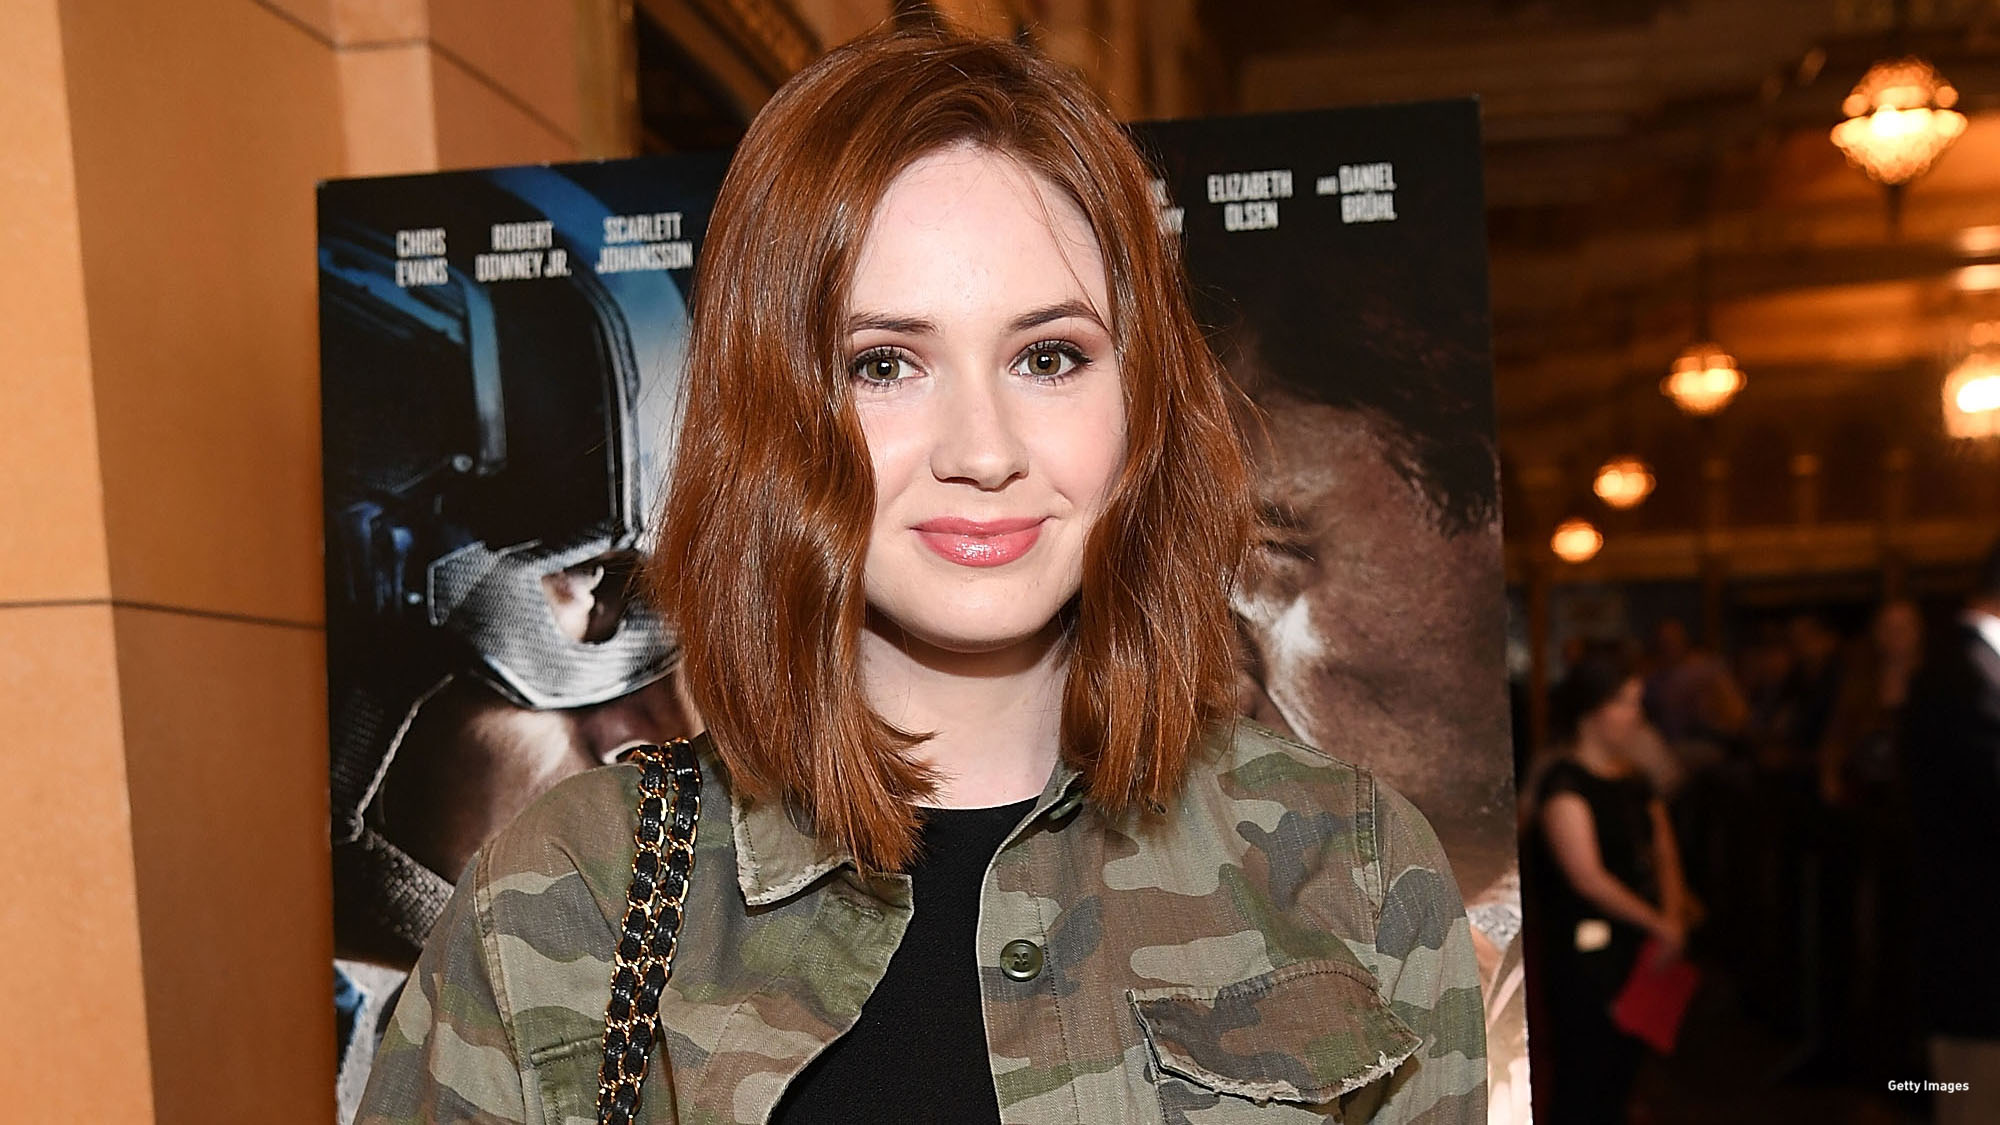 'Jumanji' will be another starring role in 2017 for Karen GIllan. (Pic: Paras Griffin/Getty Images)